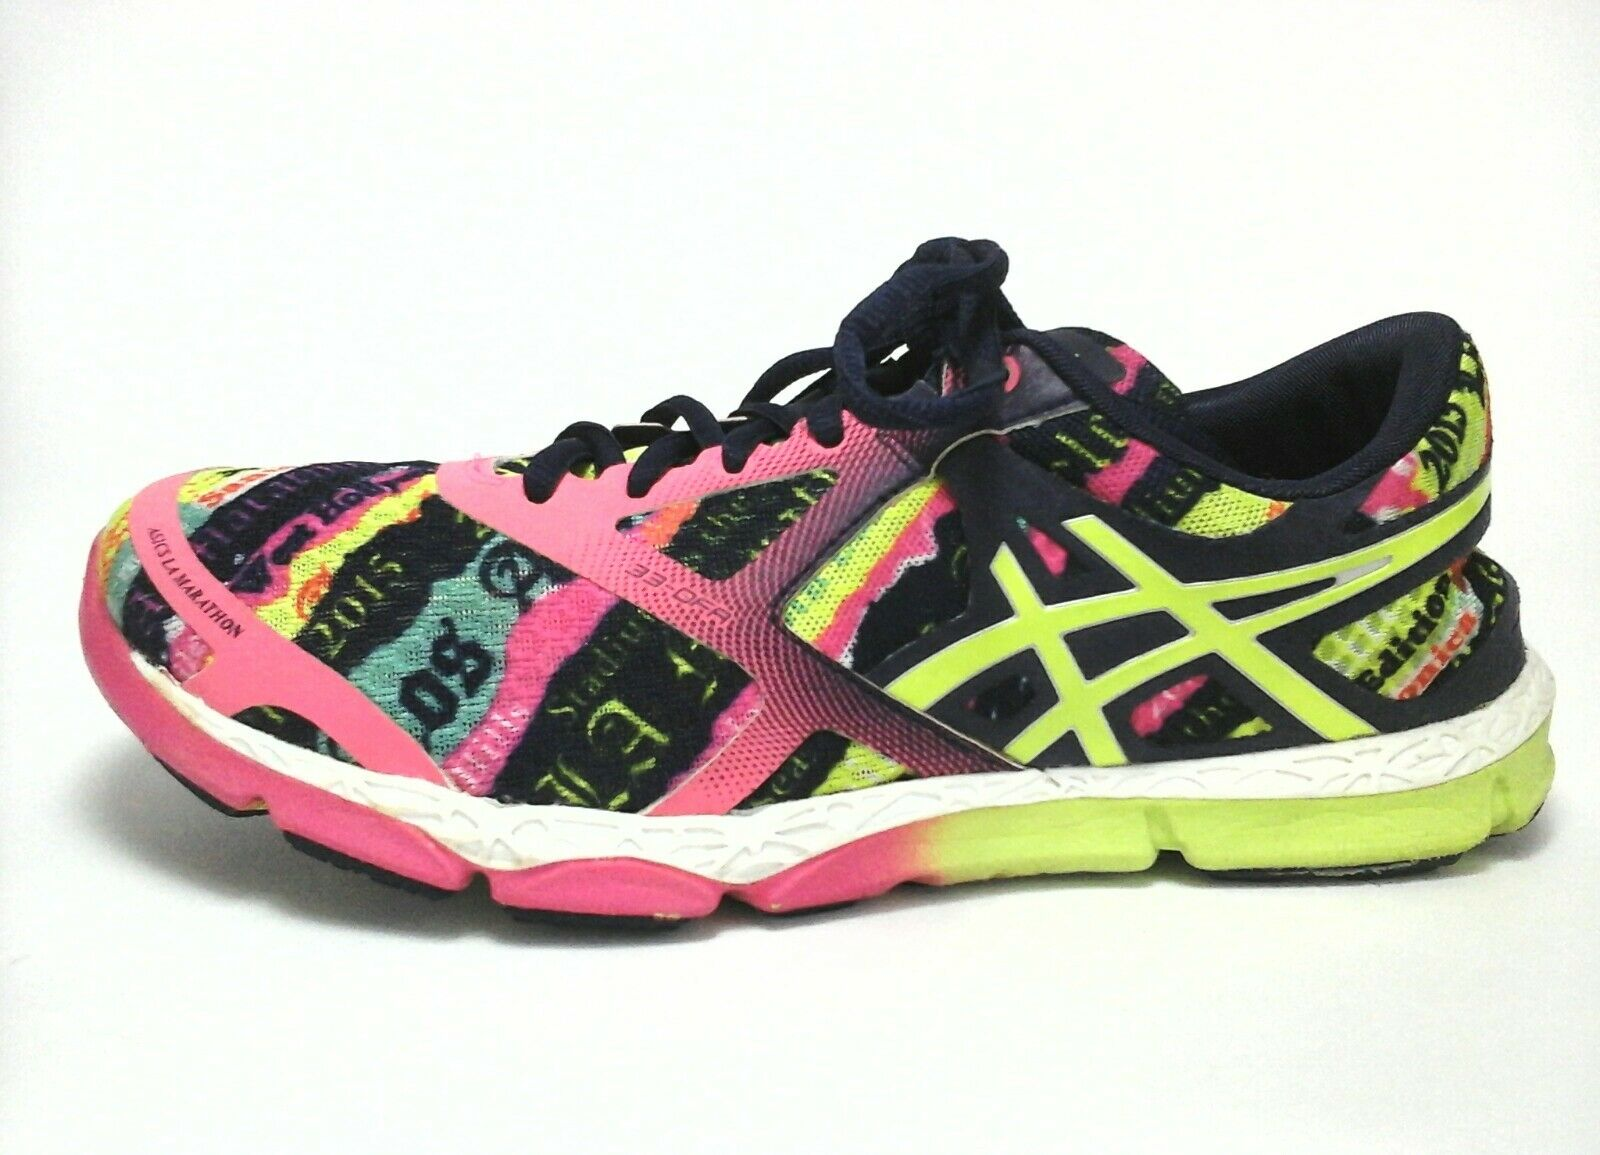 ASICS Sneakers LA MARATHON 2015 Pink Running Shoes Women's US 8/8.5 Price reduction Comfortable and good-looking